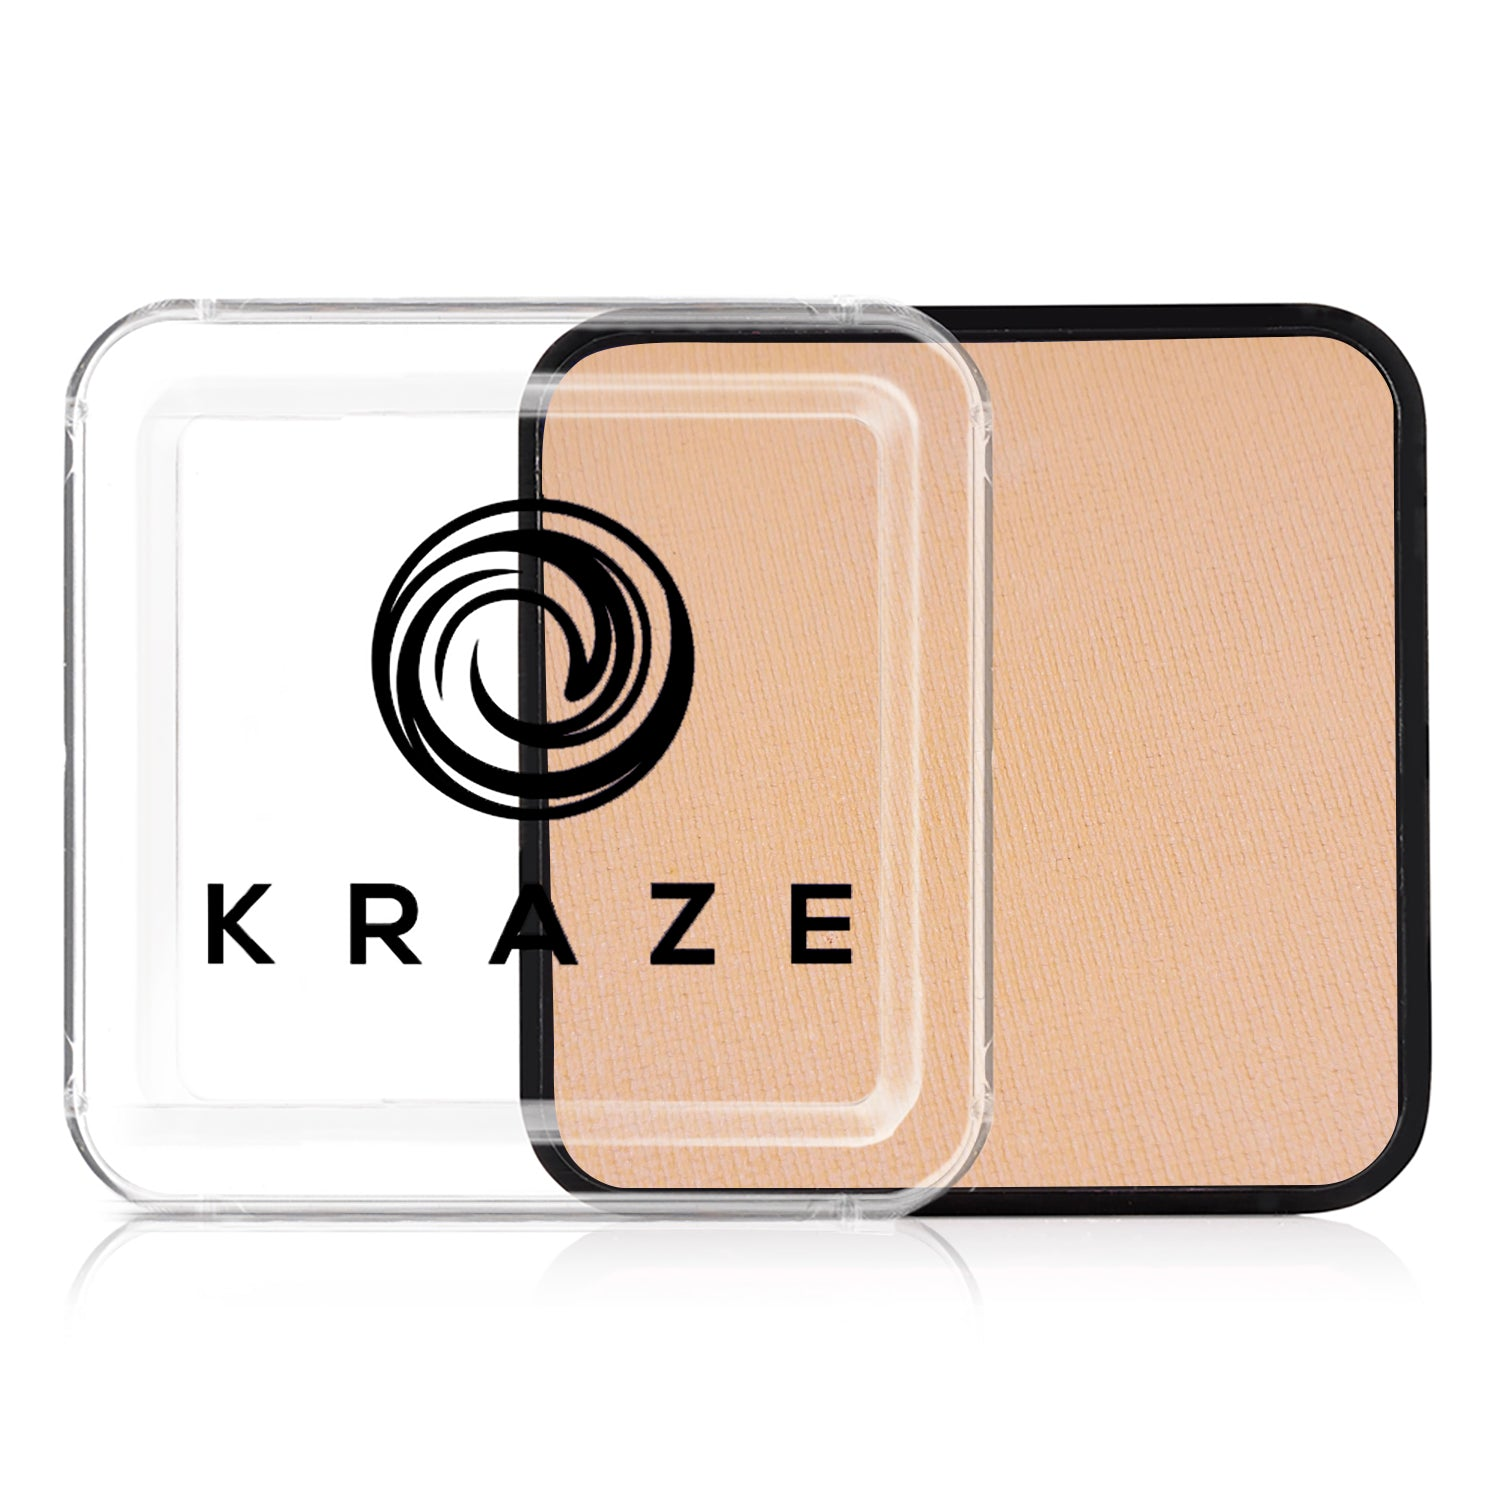 Kraze Blush Square - 25 gm